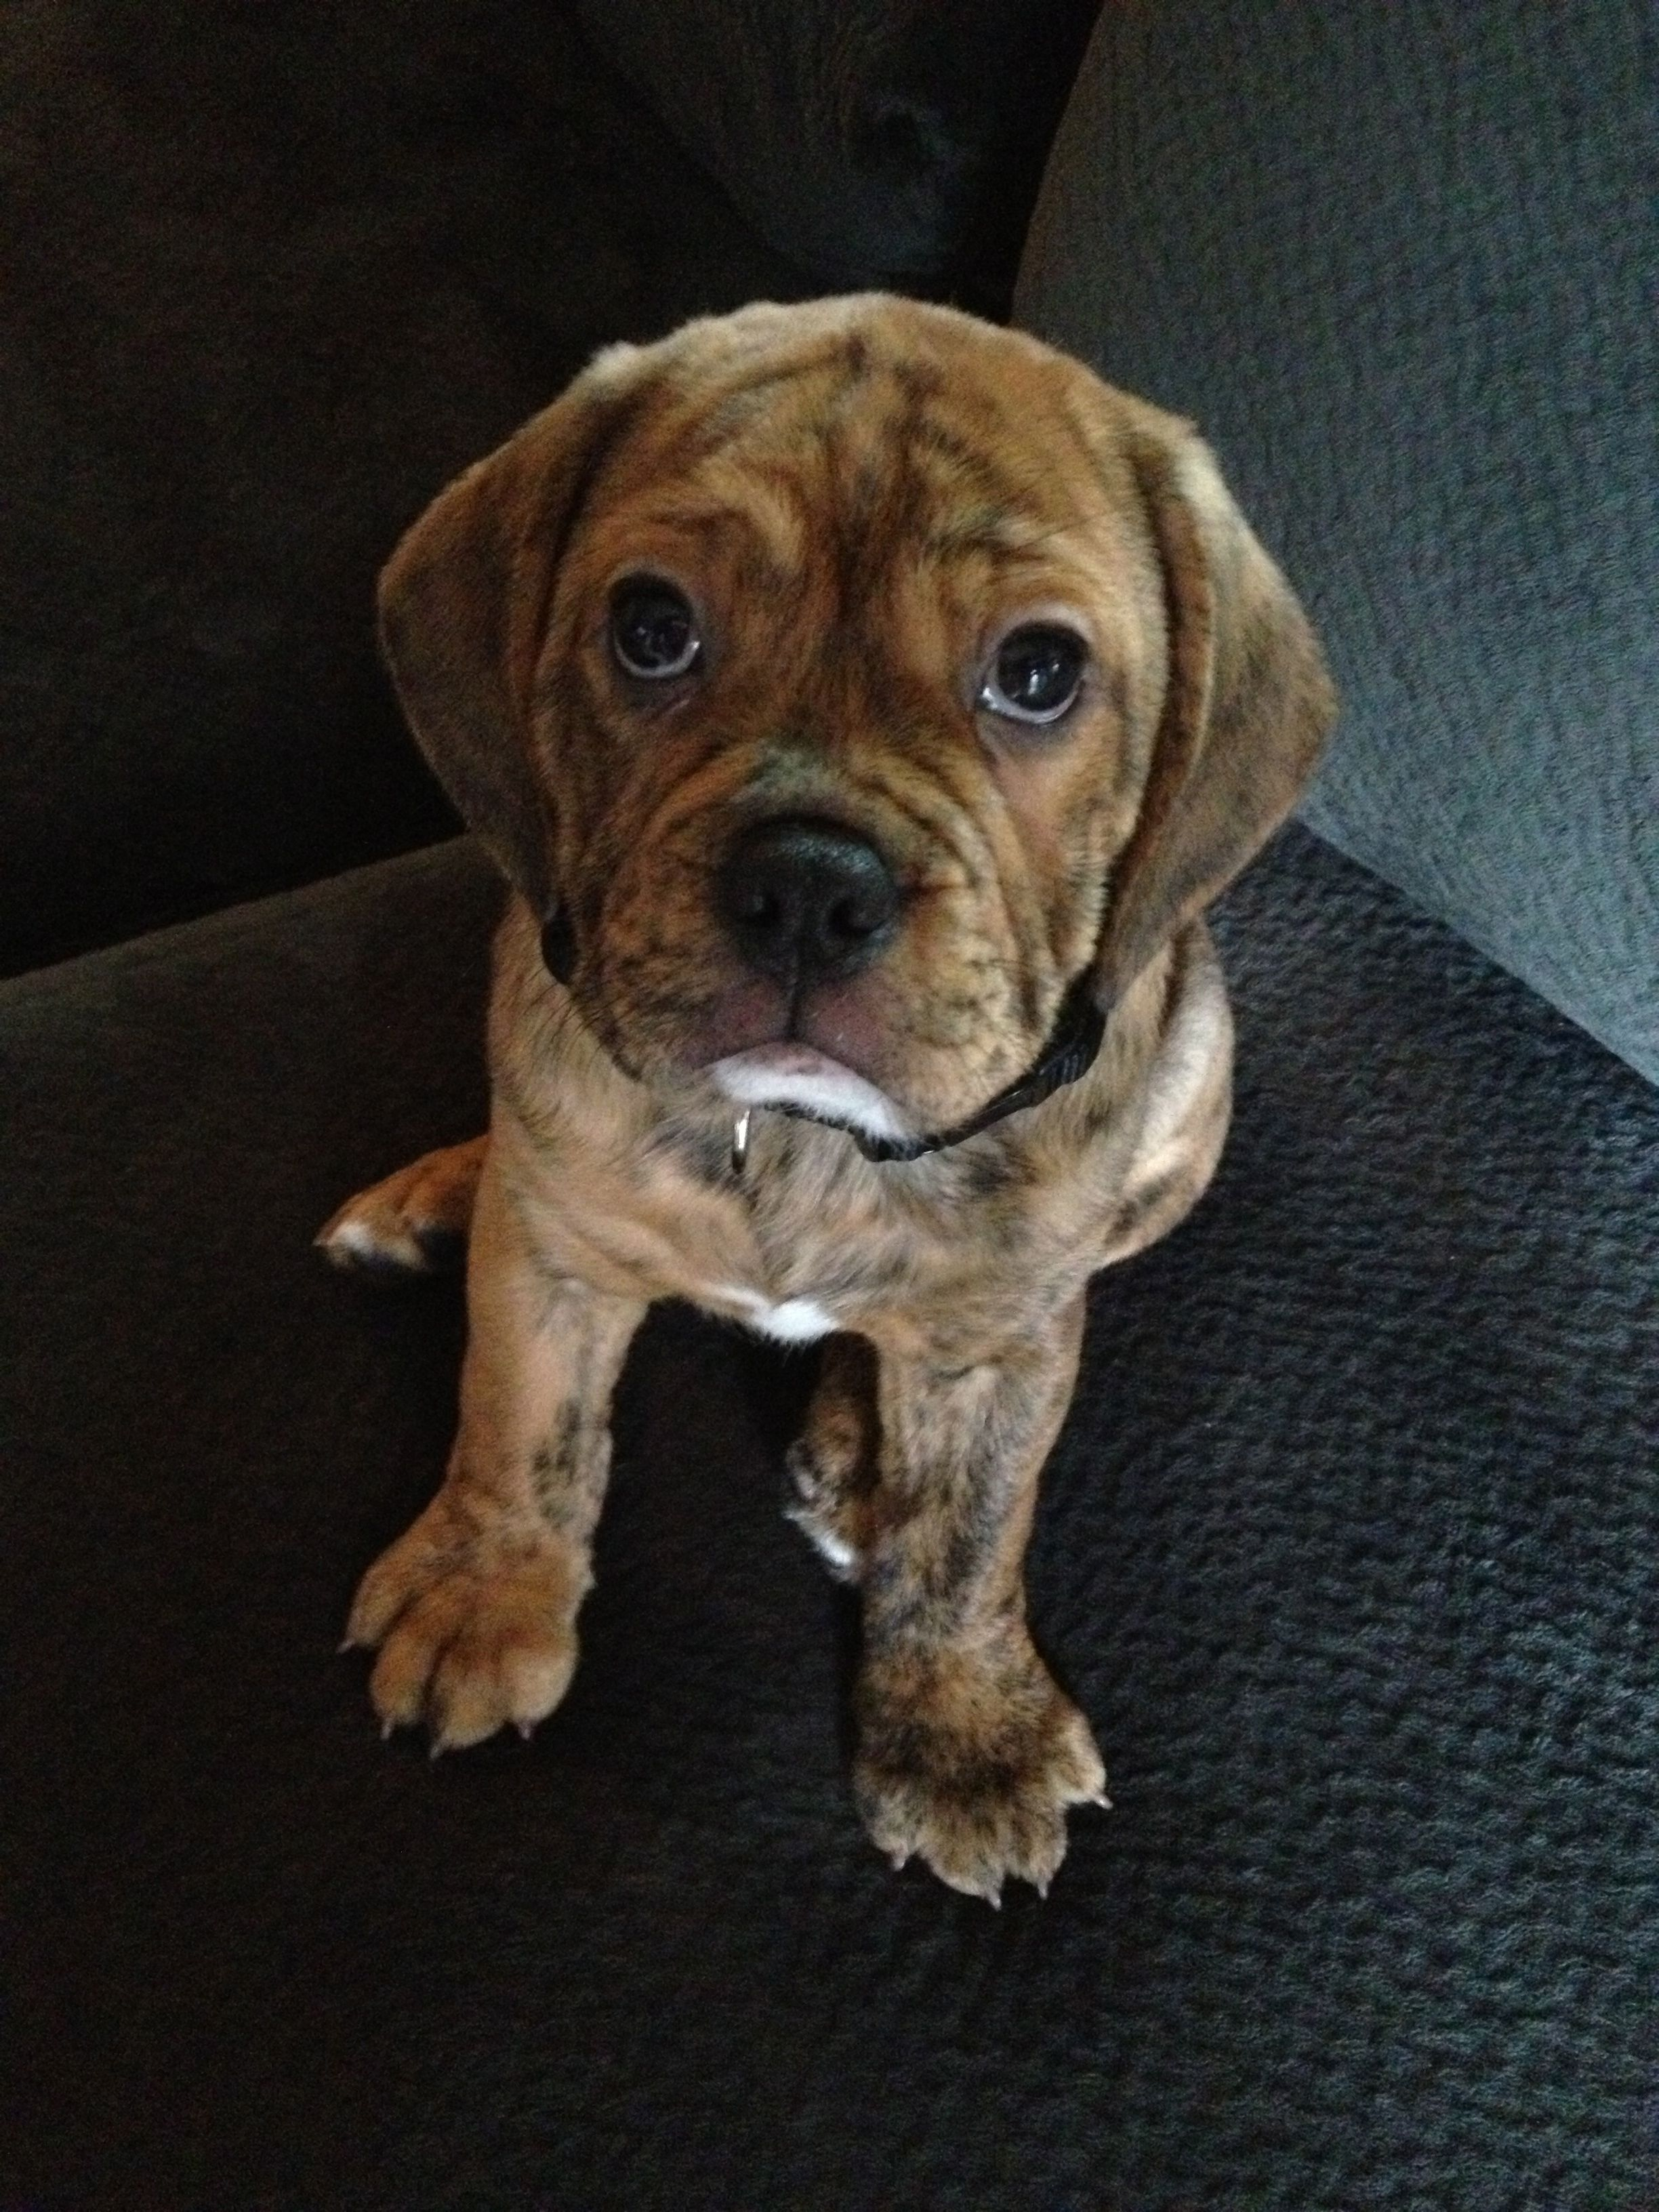 My Cousins New Dog So Jealous He Is So Cute Bulldog And Puggle